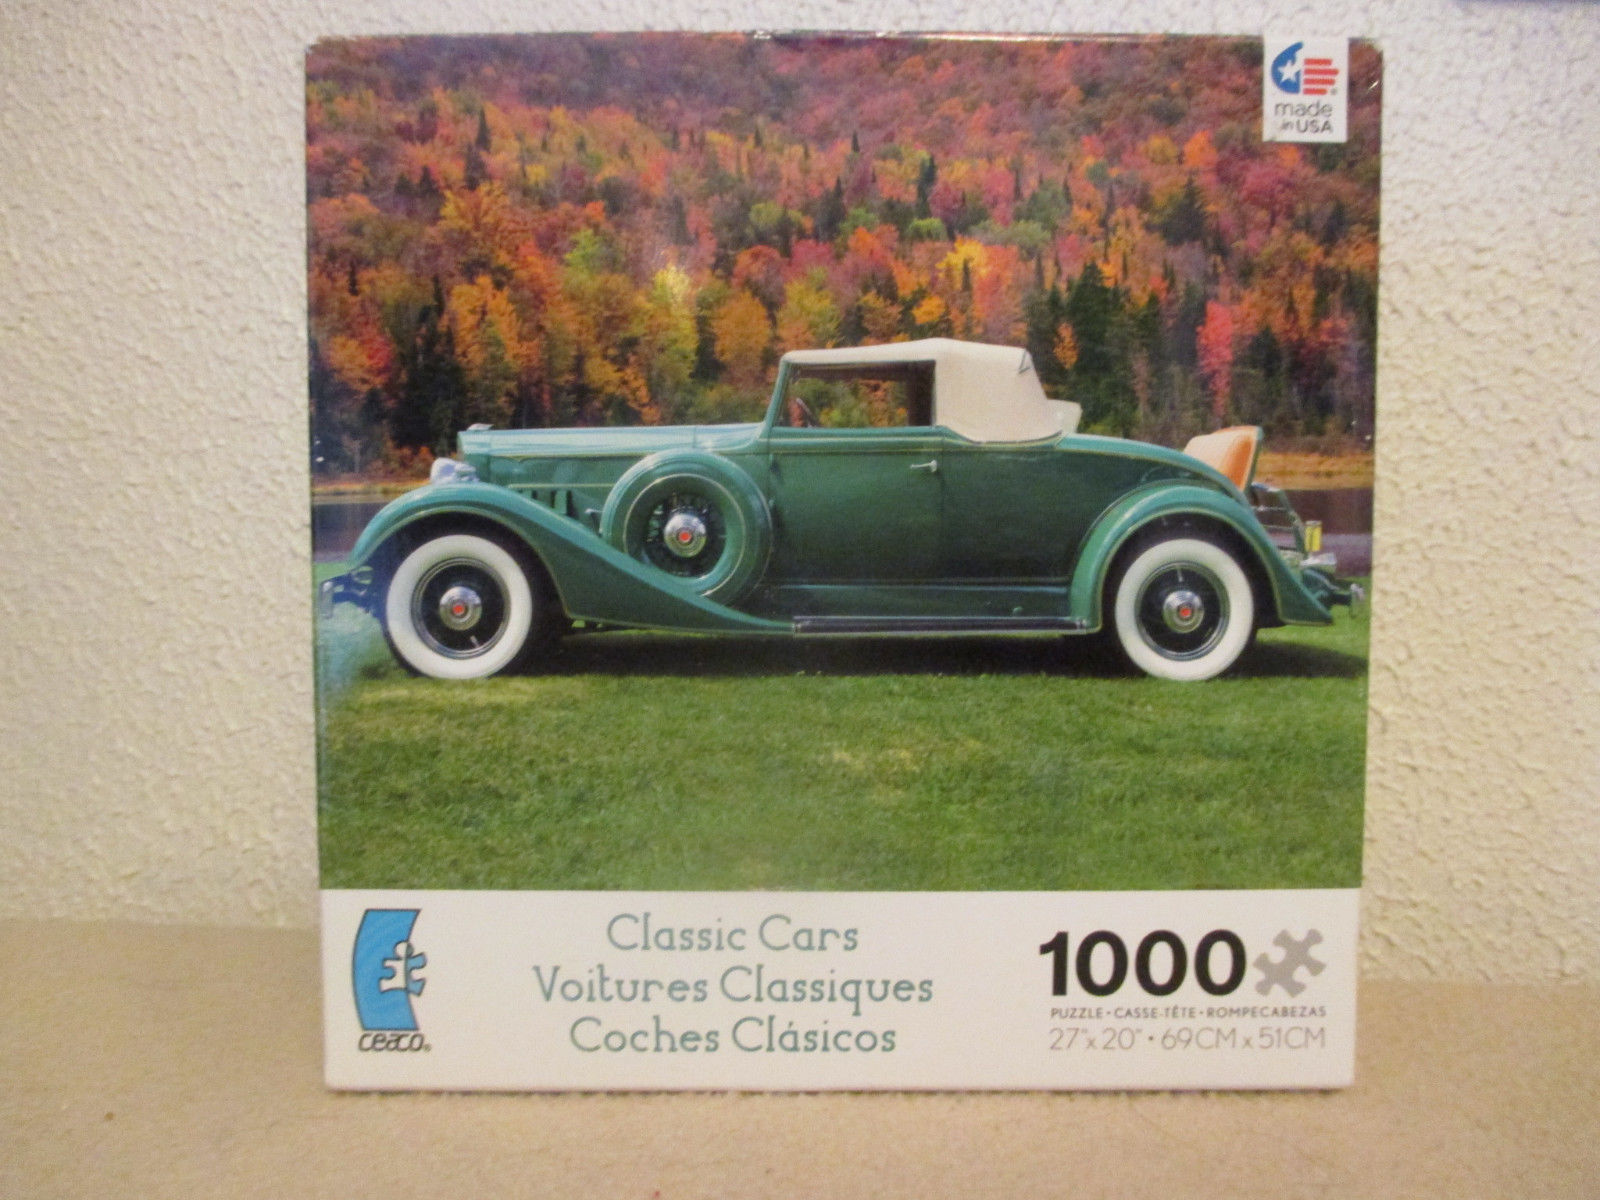 Classic Cars 1000 Piece Jigsaw Puzzle Ceaco and 50 similar items